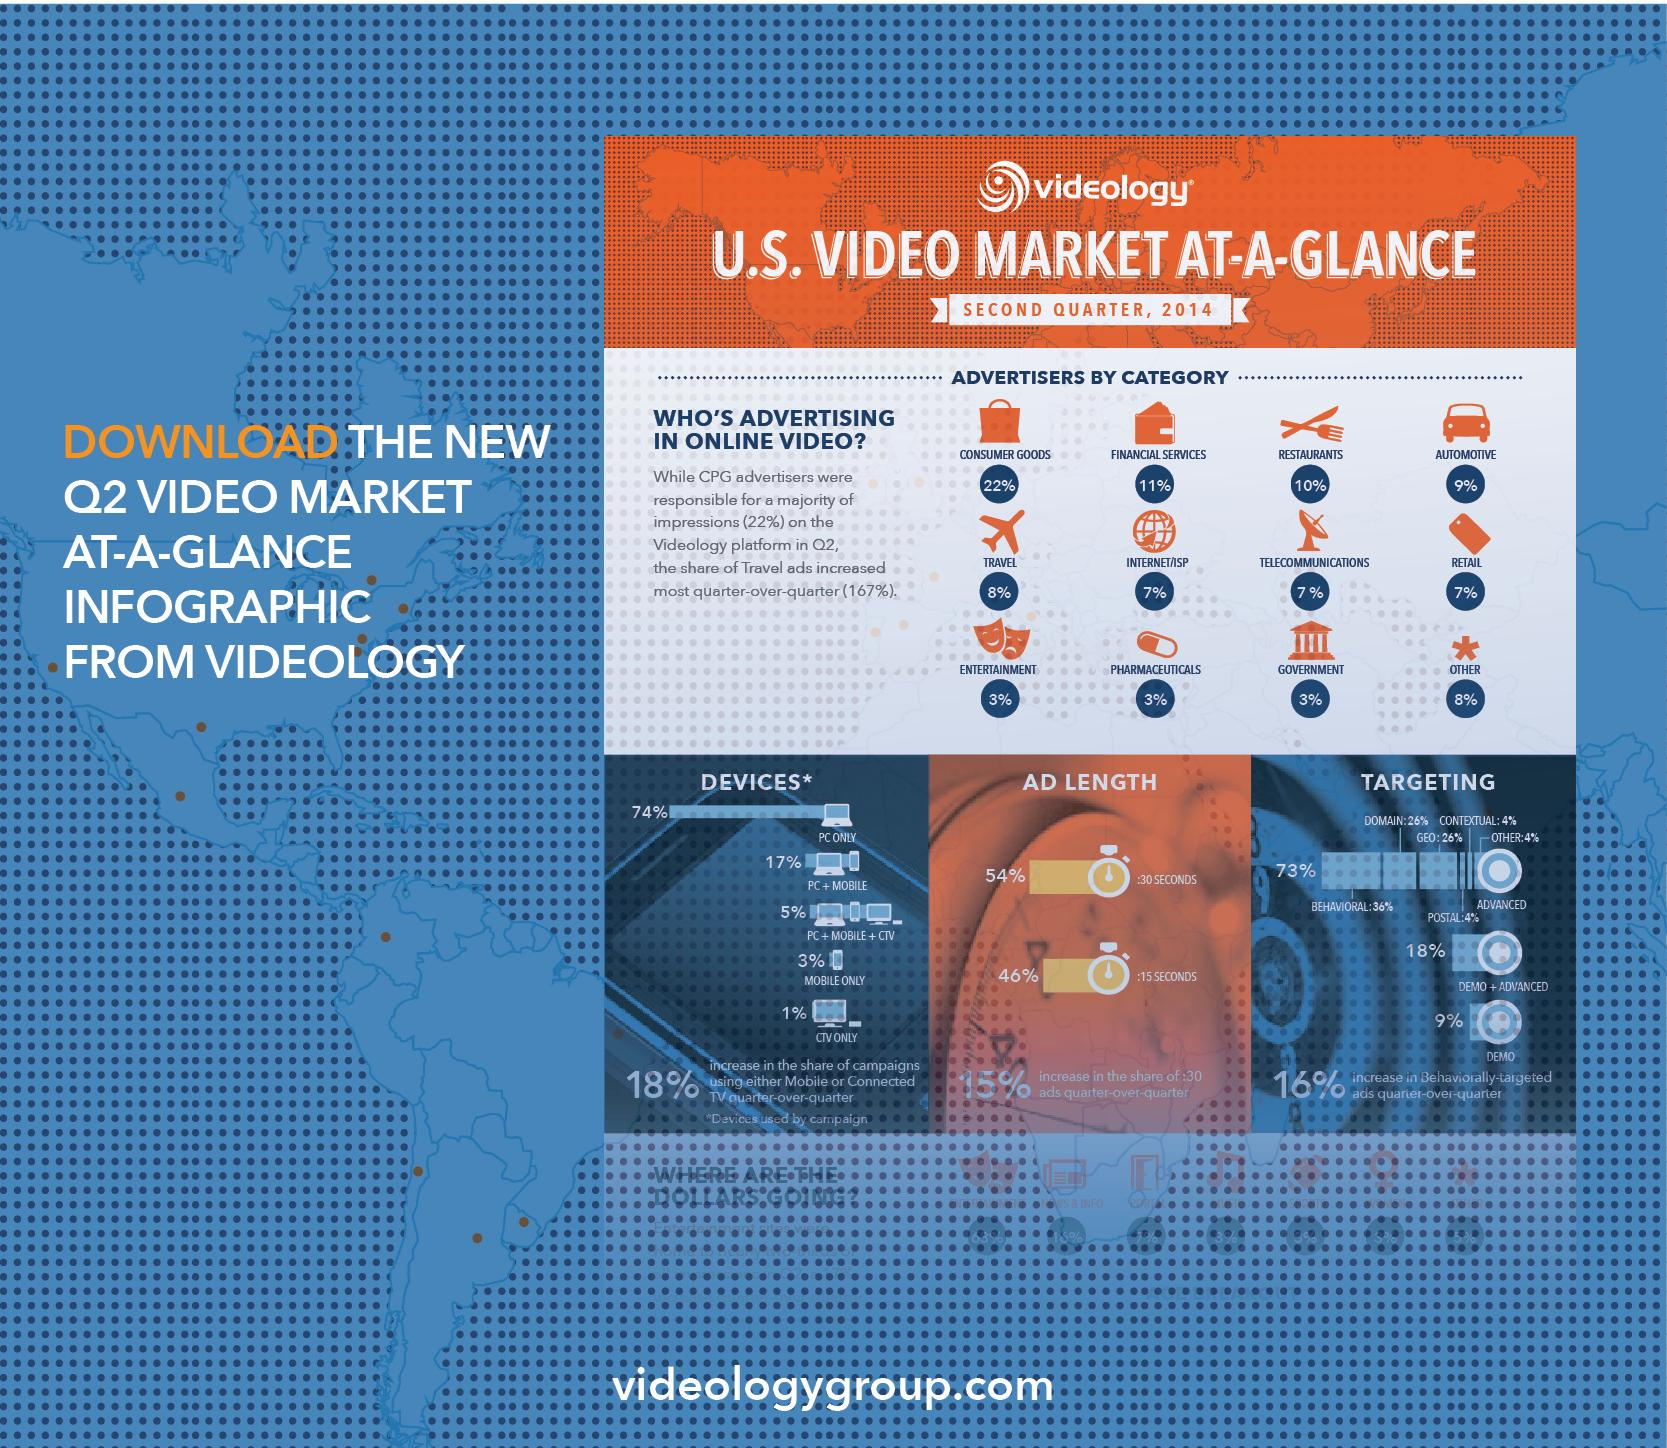 Download our new Q2 Video Market At-A-Glance #infographic for latest trends. #videoads #adtech http://t.co/8nm78GkWgU http://t.co/p7K3LoNNoG